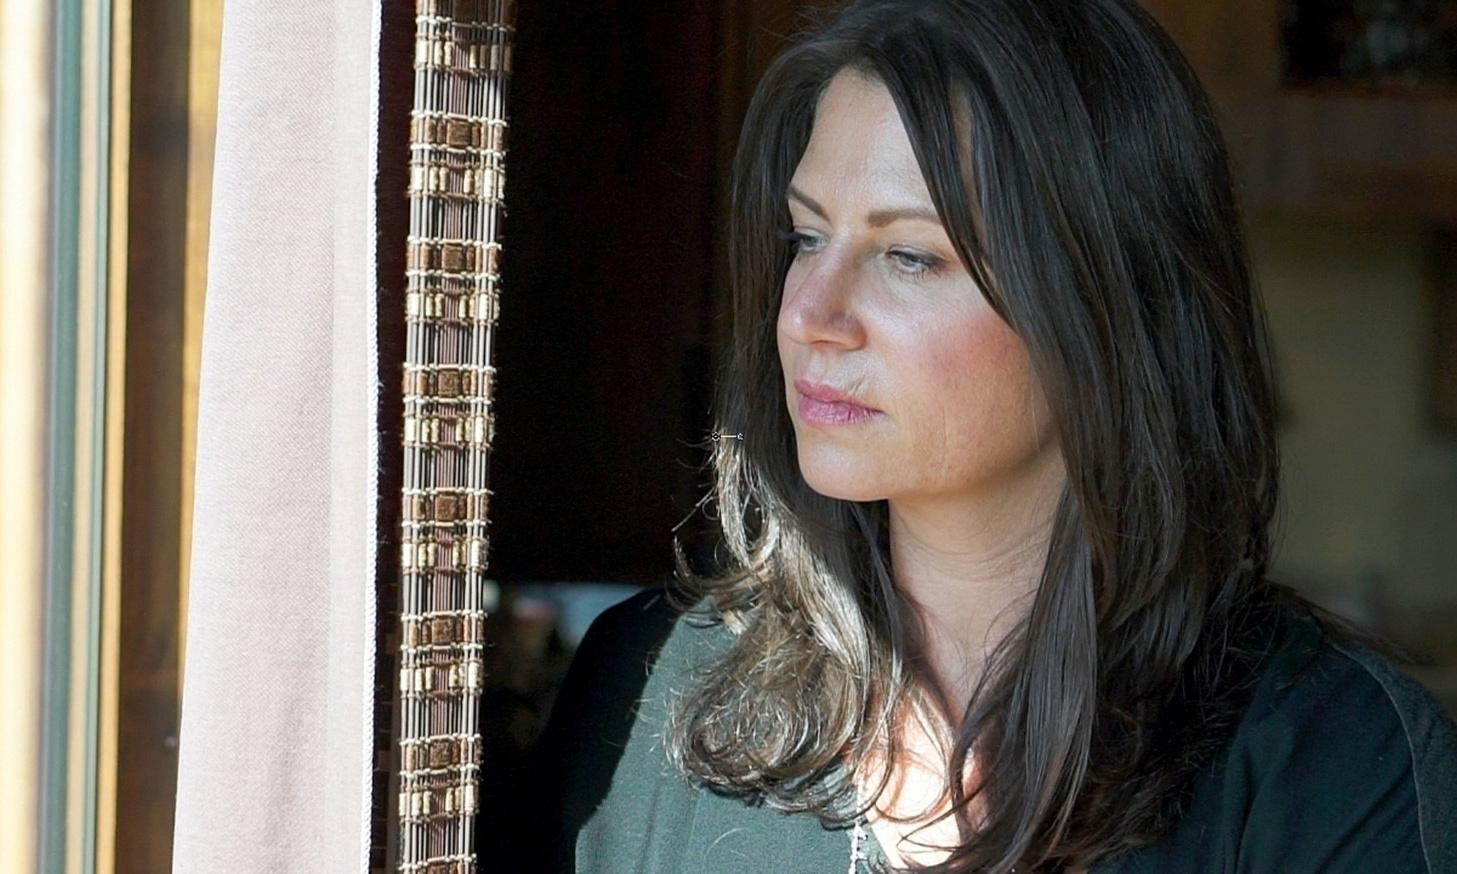 Judge advises $14m in damages to Jewish woman targeted by neo-Nazi 'troll storm'